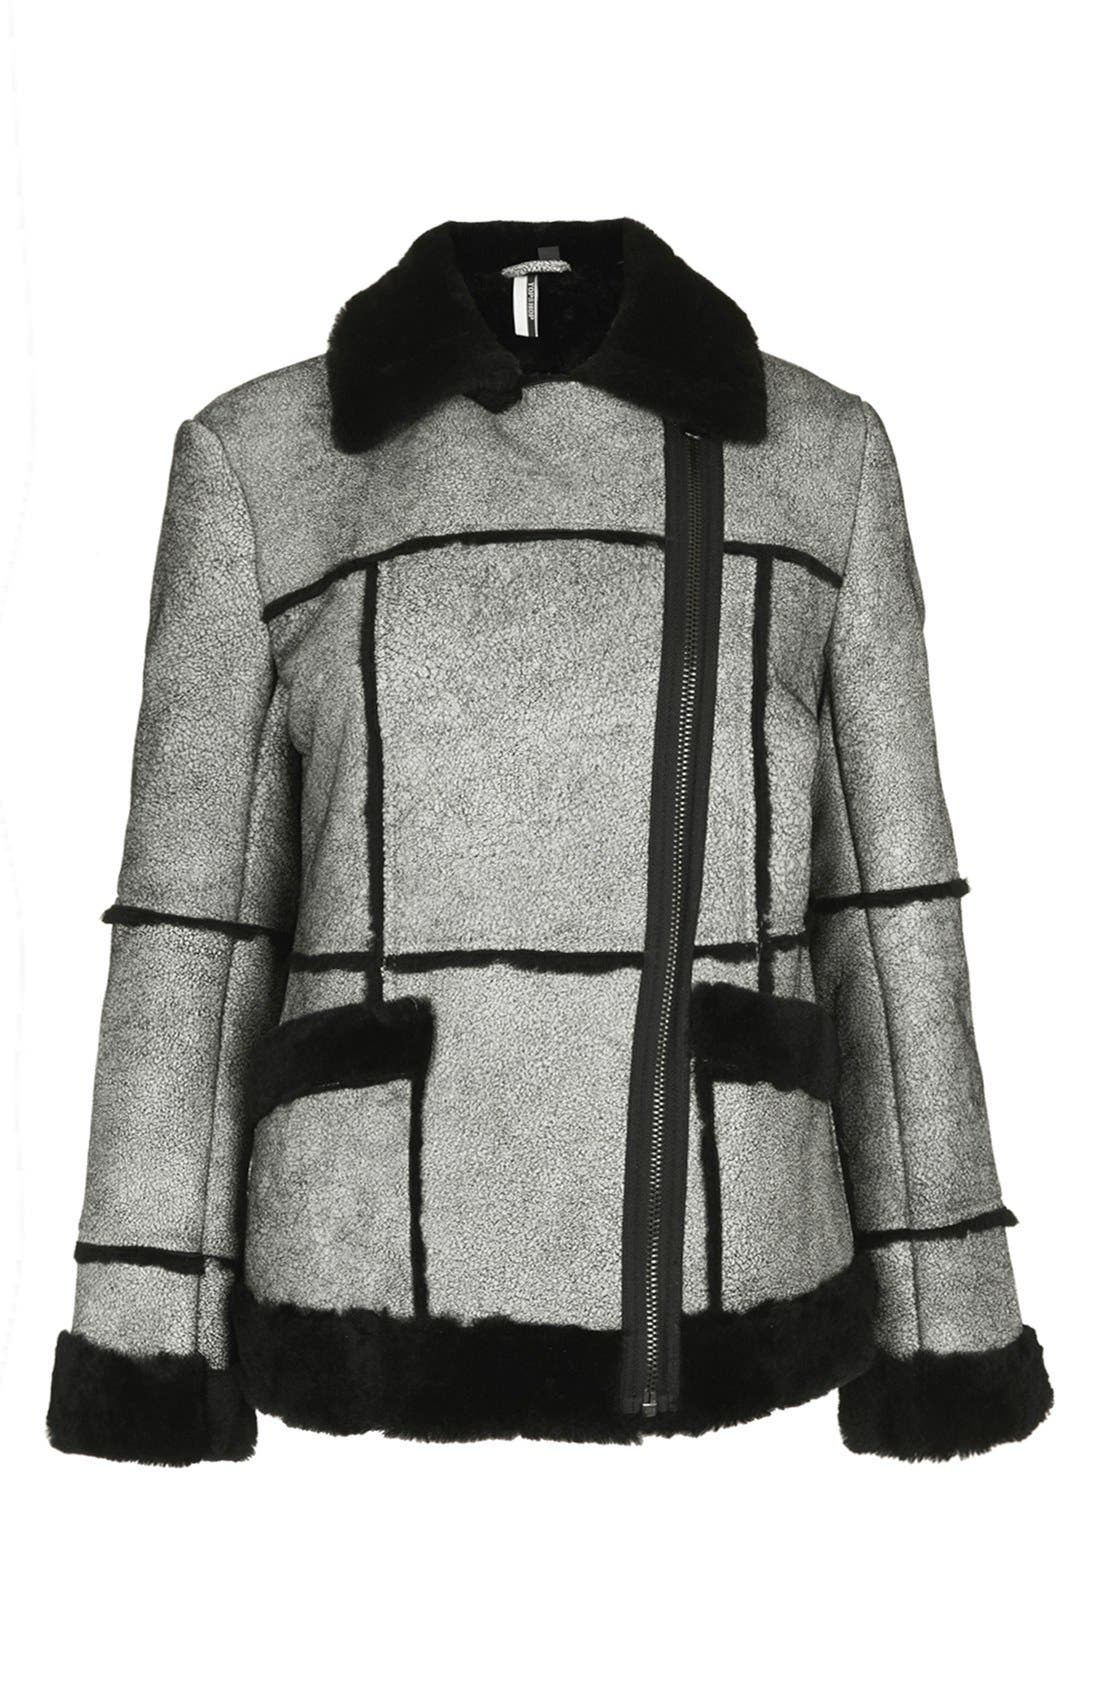 Main Image - Topshop 'The Collection Starring Kate Bosworth' Genuine Shearling Trim Jacket